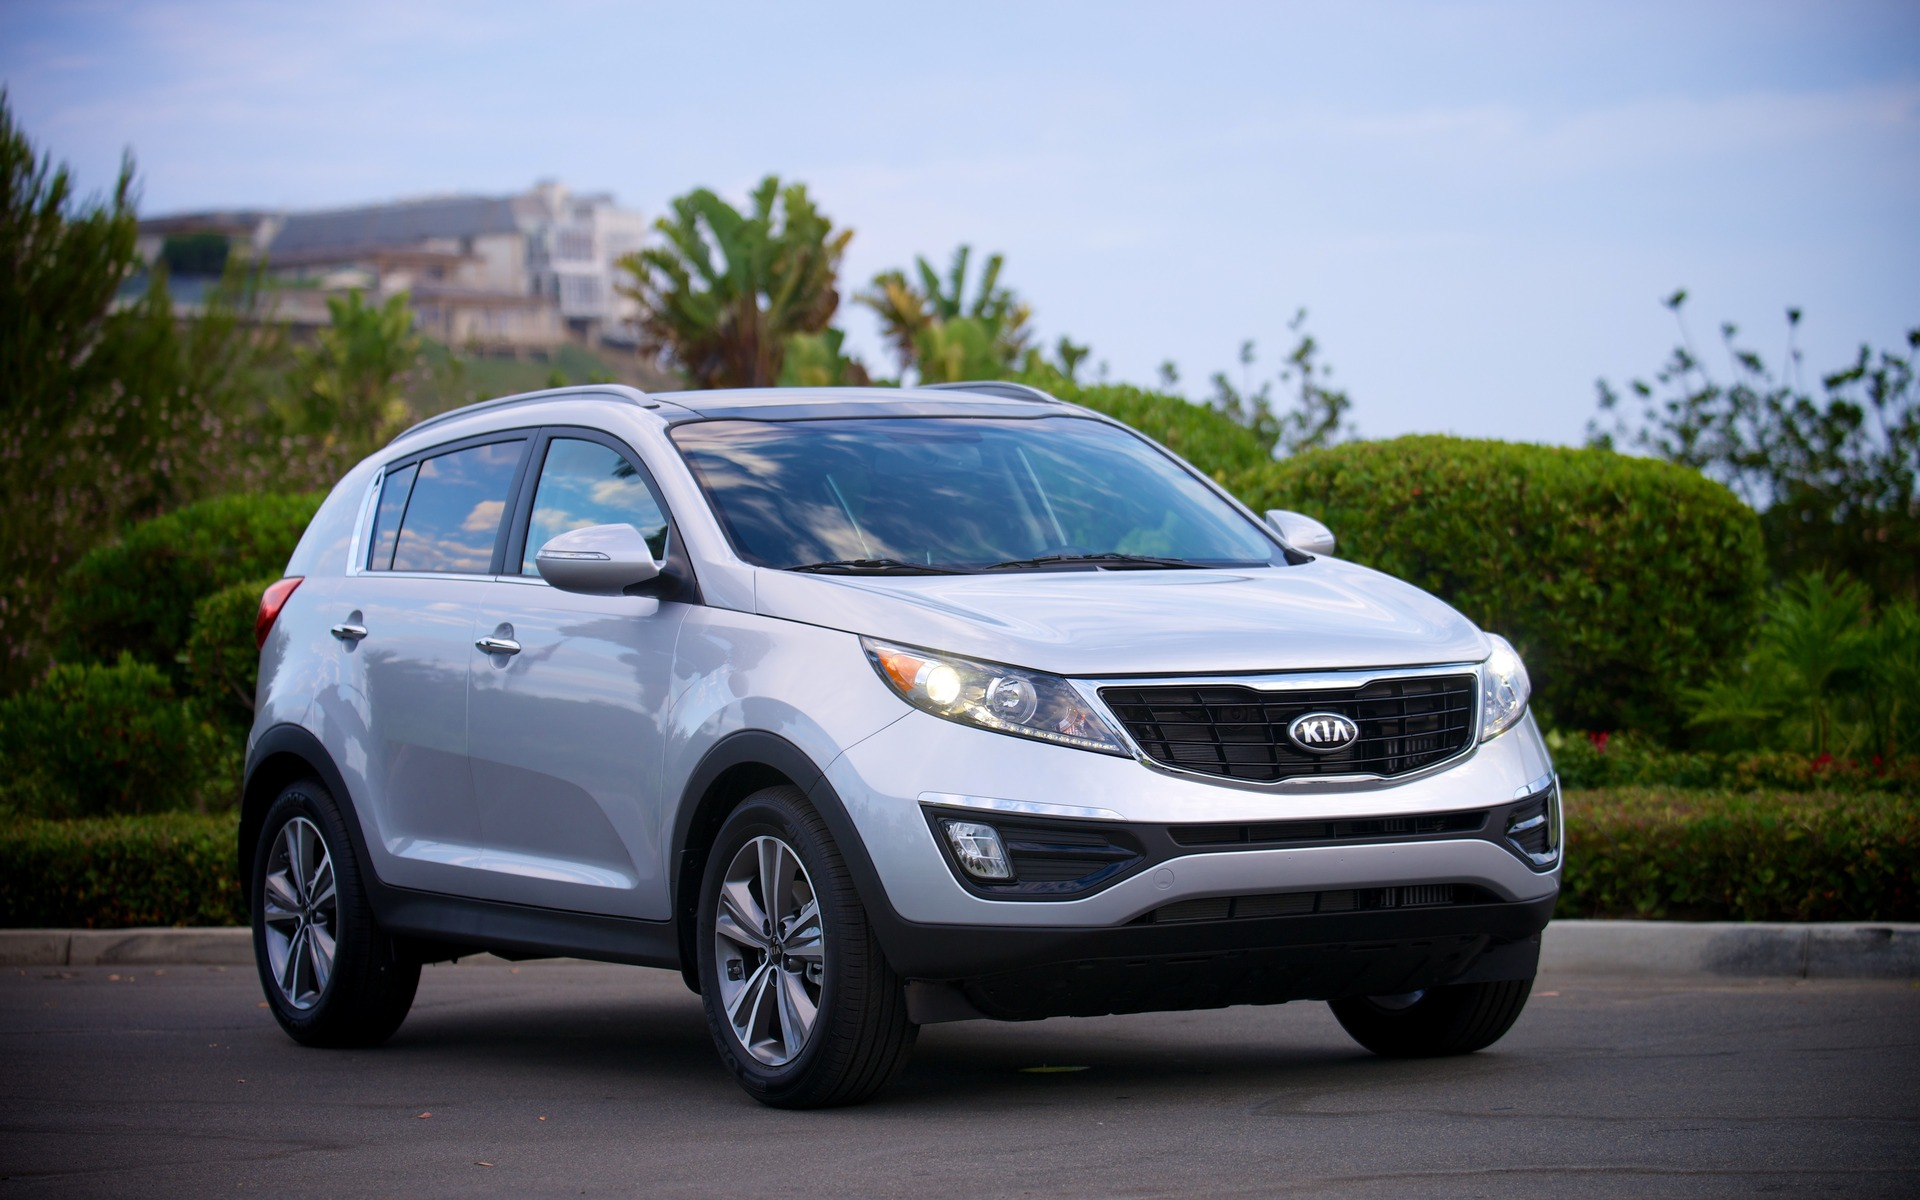 The 2015 Kia Sportage SX Luxury is a great little crossover.